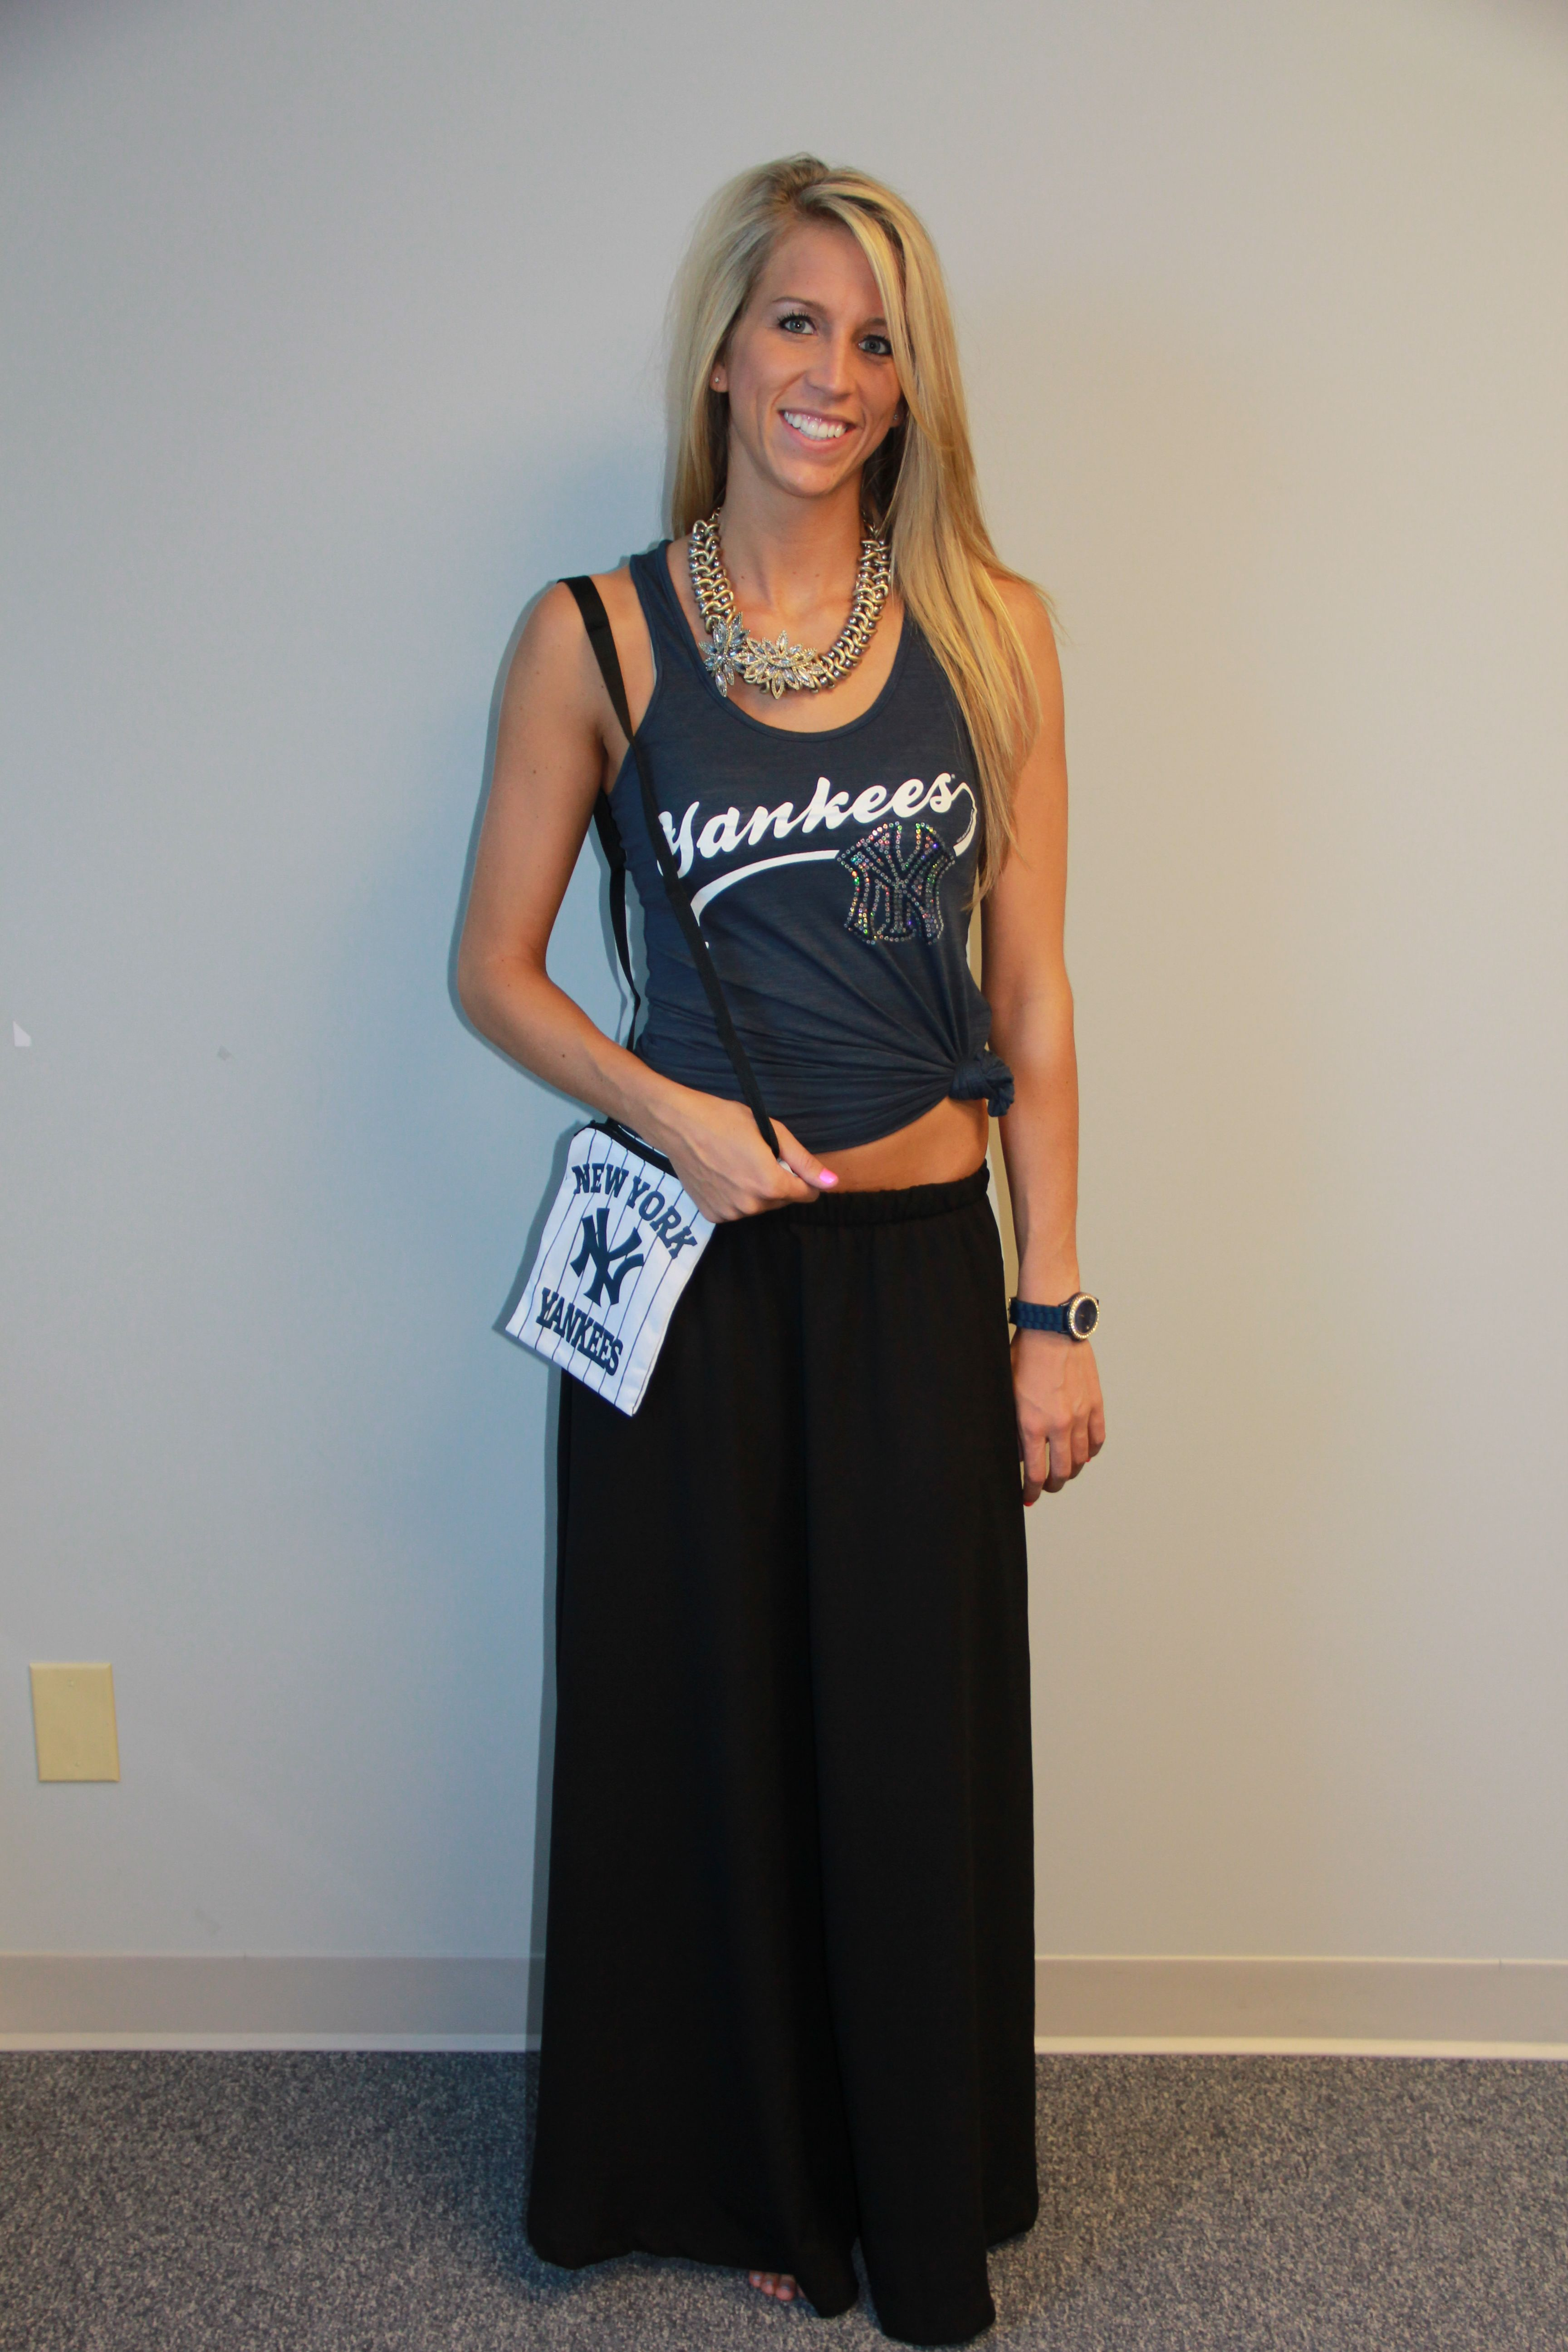 Some more tailgate outfits from Jordan Get your Yankees gear for